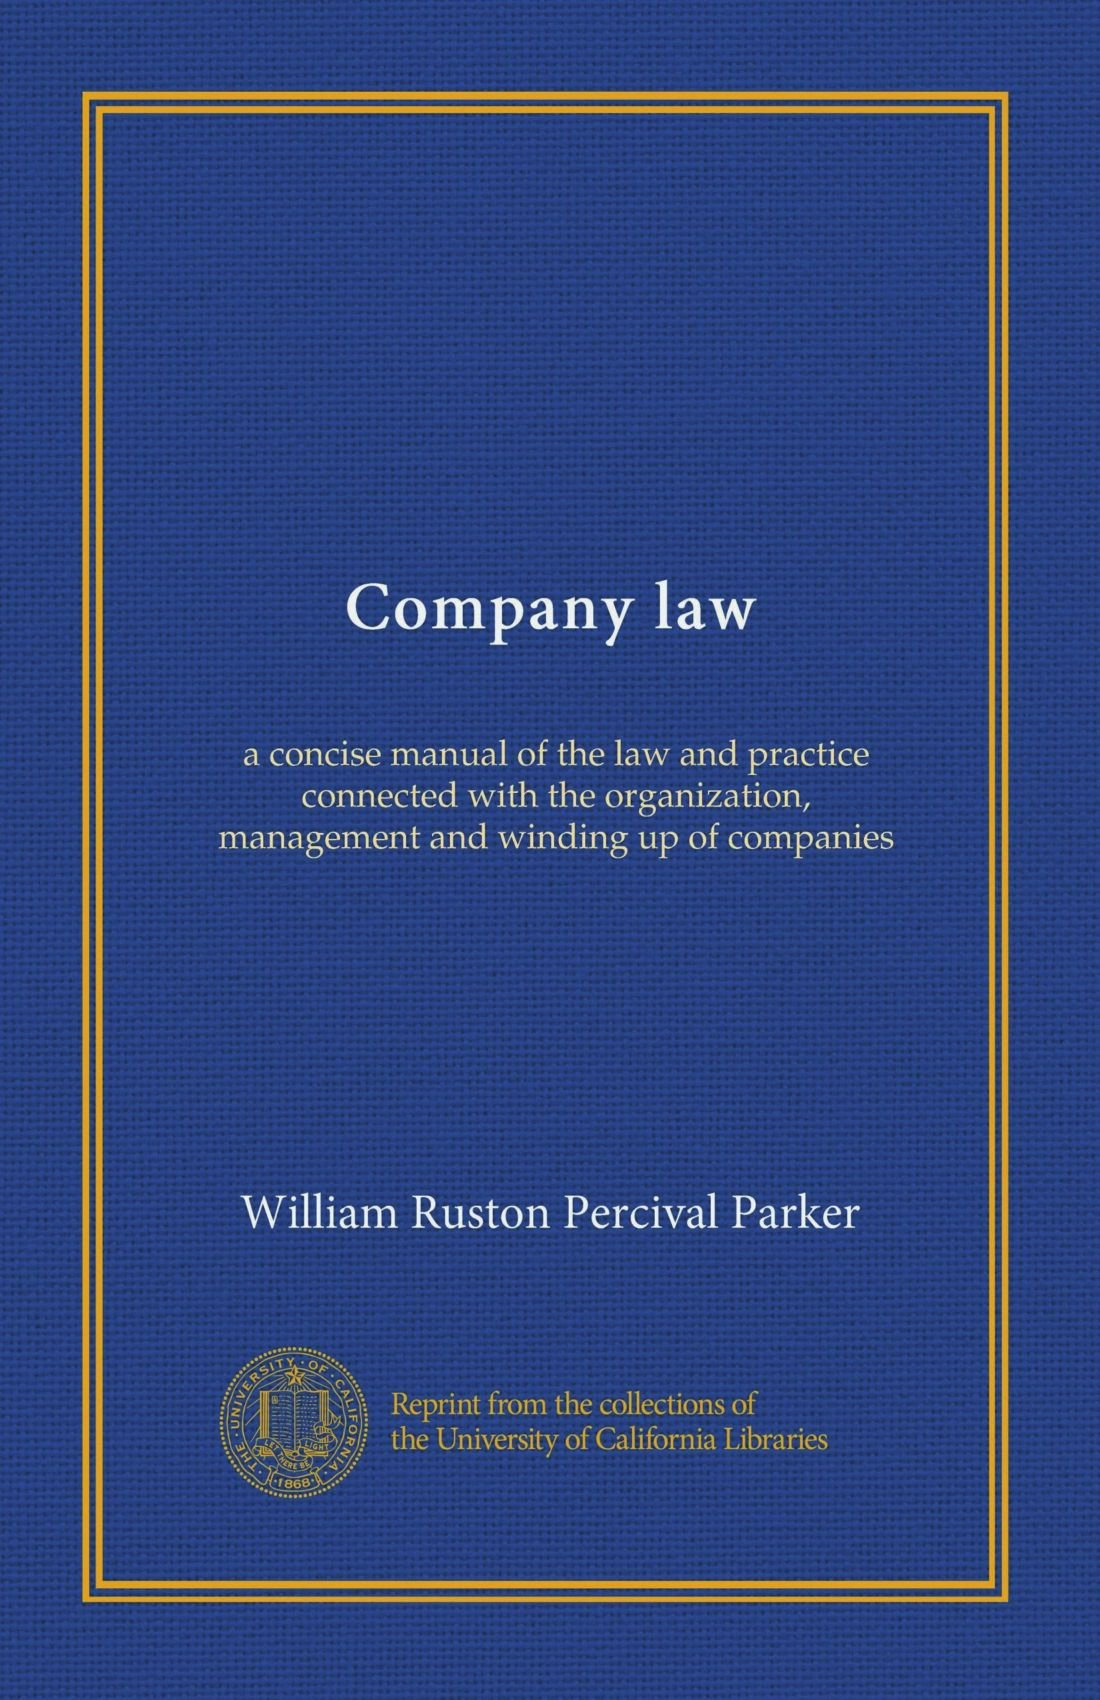 Company law: a concise manual of the law and practice connected with the organization, management and winding up of companies pdf epub